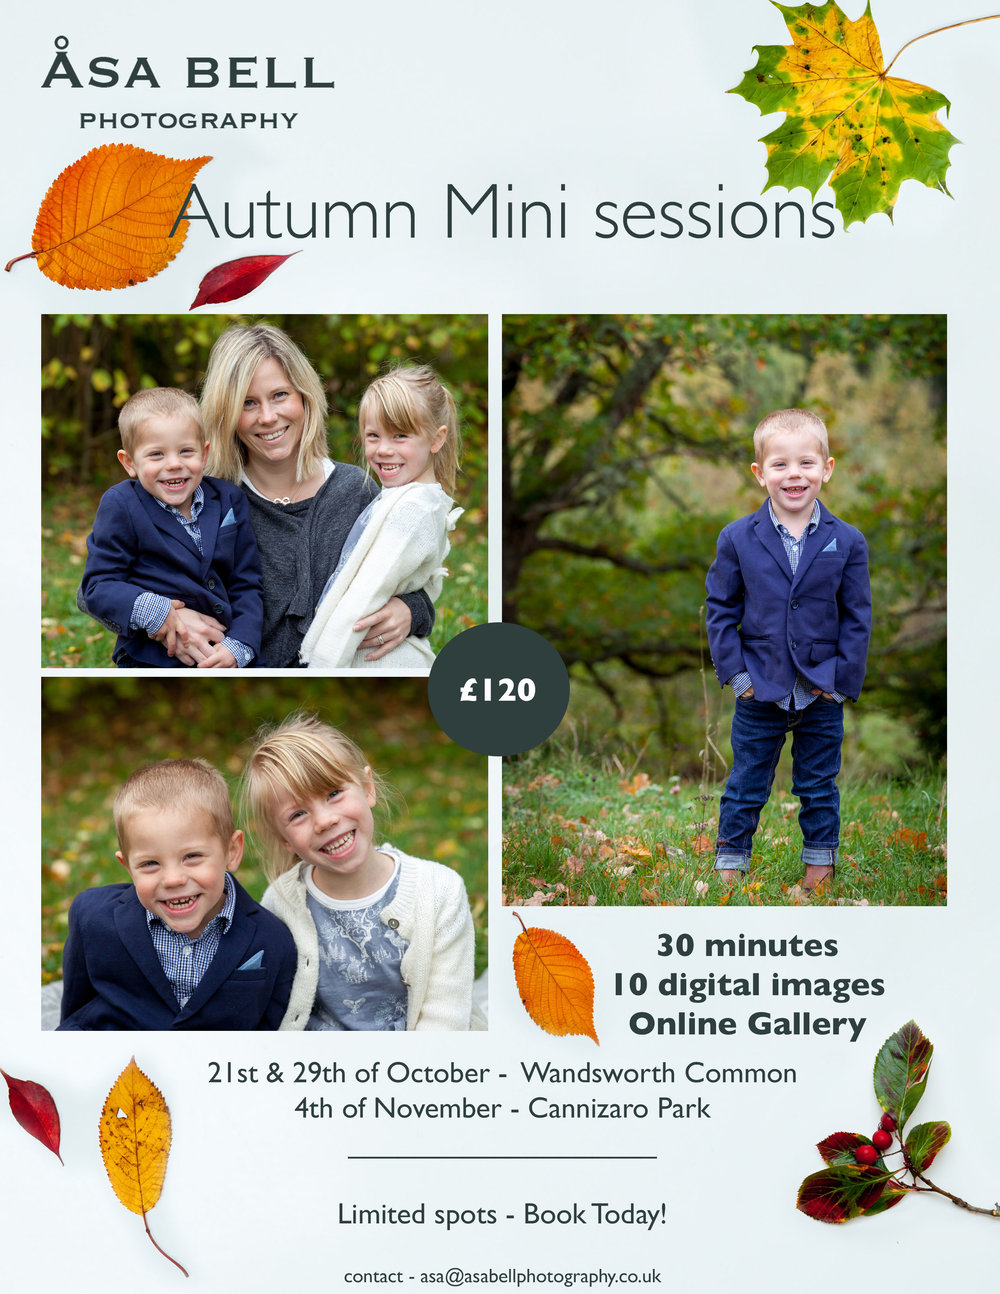 Autumn Minisession 2017 asa bell photography.jpg